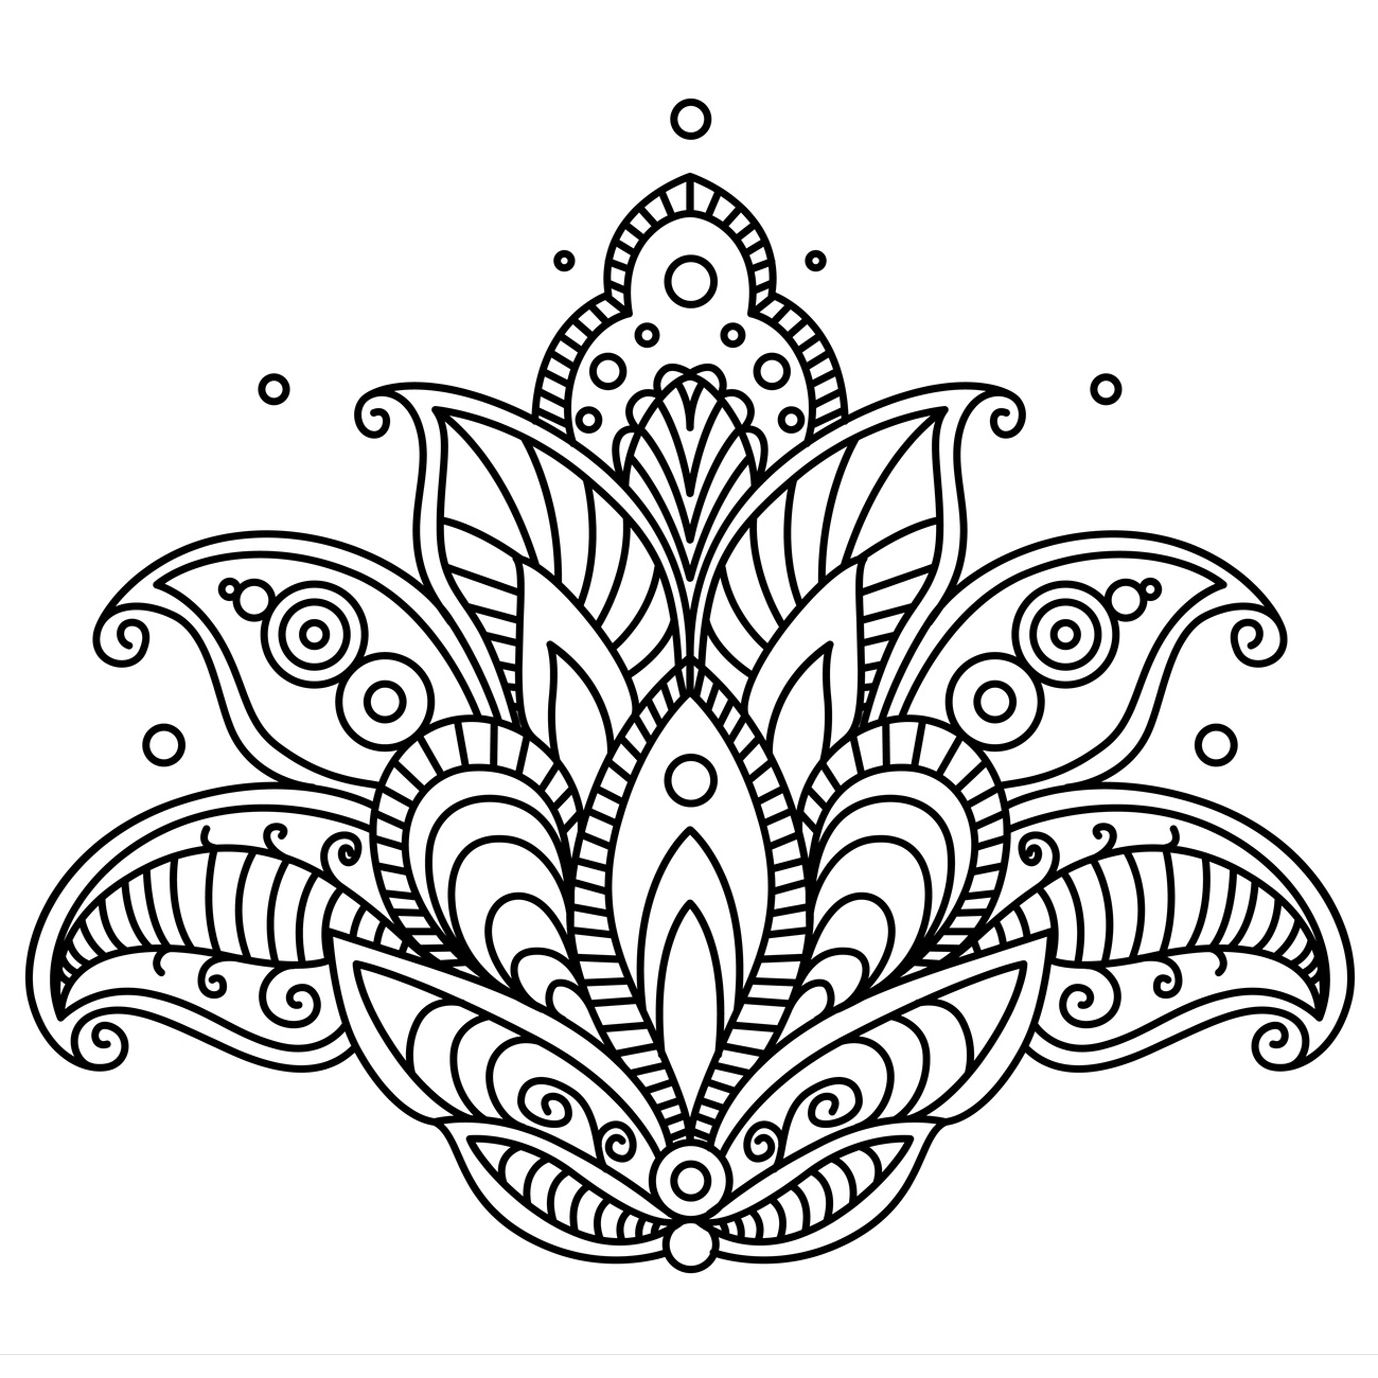 mandala - Buscar con Google | mandalas-zentangle art | Pinterest ...